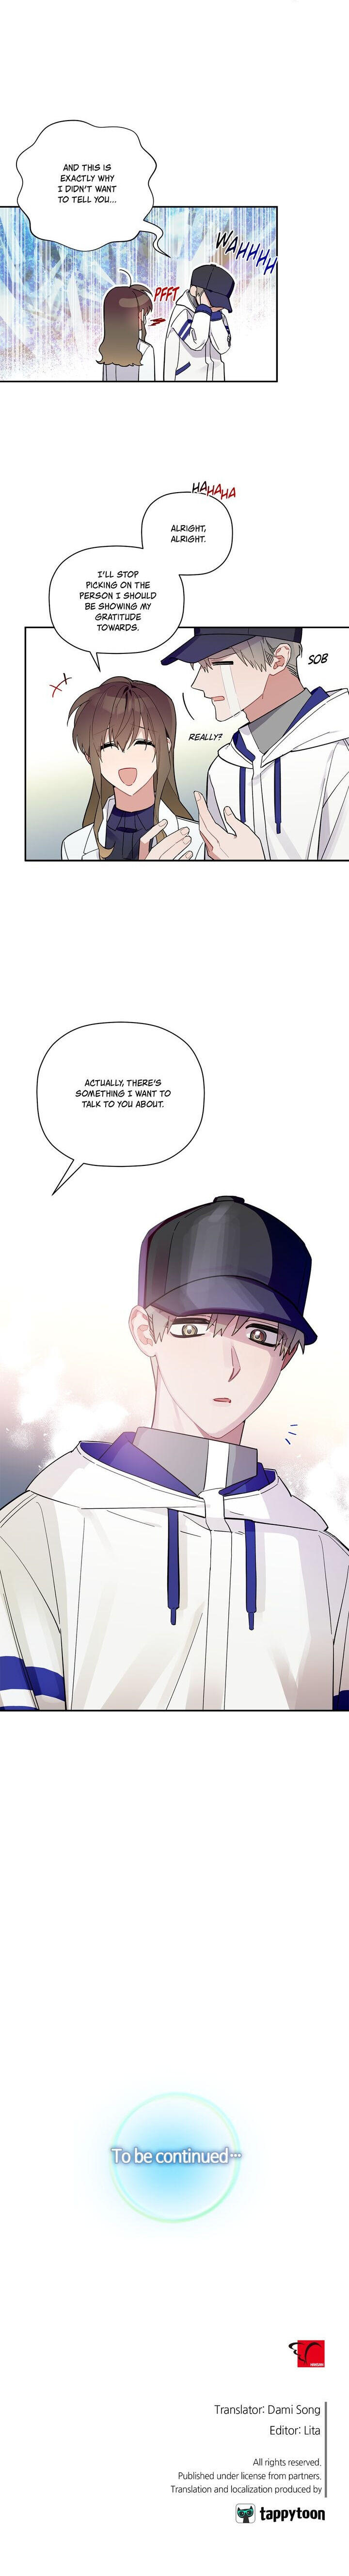 Give Me A Flower, And I'Ll Give You All Of Me Chapter 52 page 15 - Mangakakalots.com